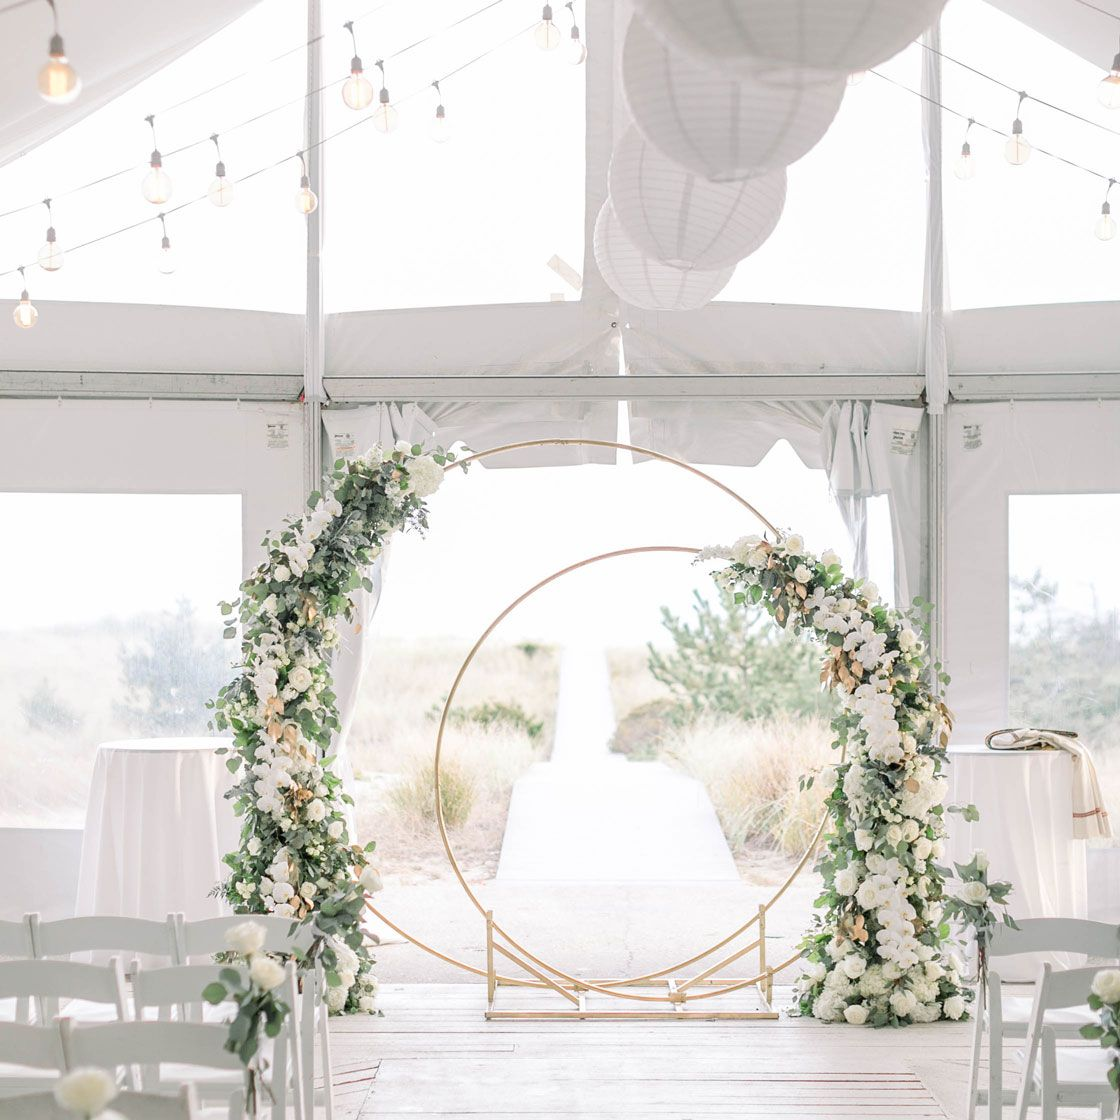 Whether Indoor Or Our Your Wedding Ceremony At Oceanbleu Promises To Be Beautiful Photodh Bklynbloom Bridal Attendant Wedding Wire Beach Ceremony